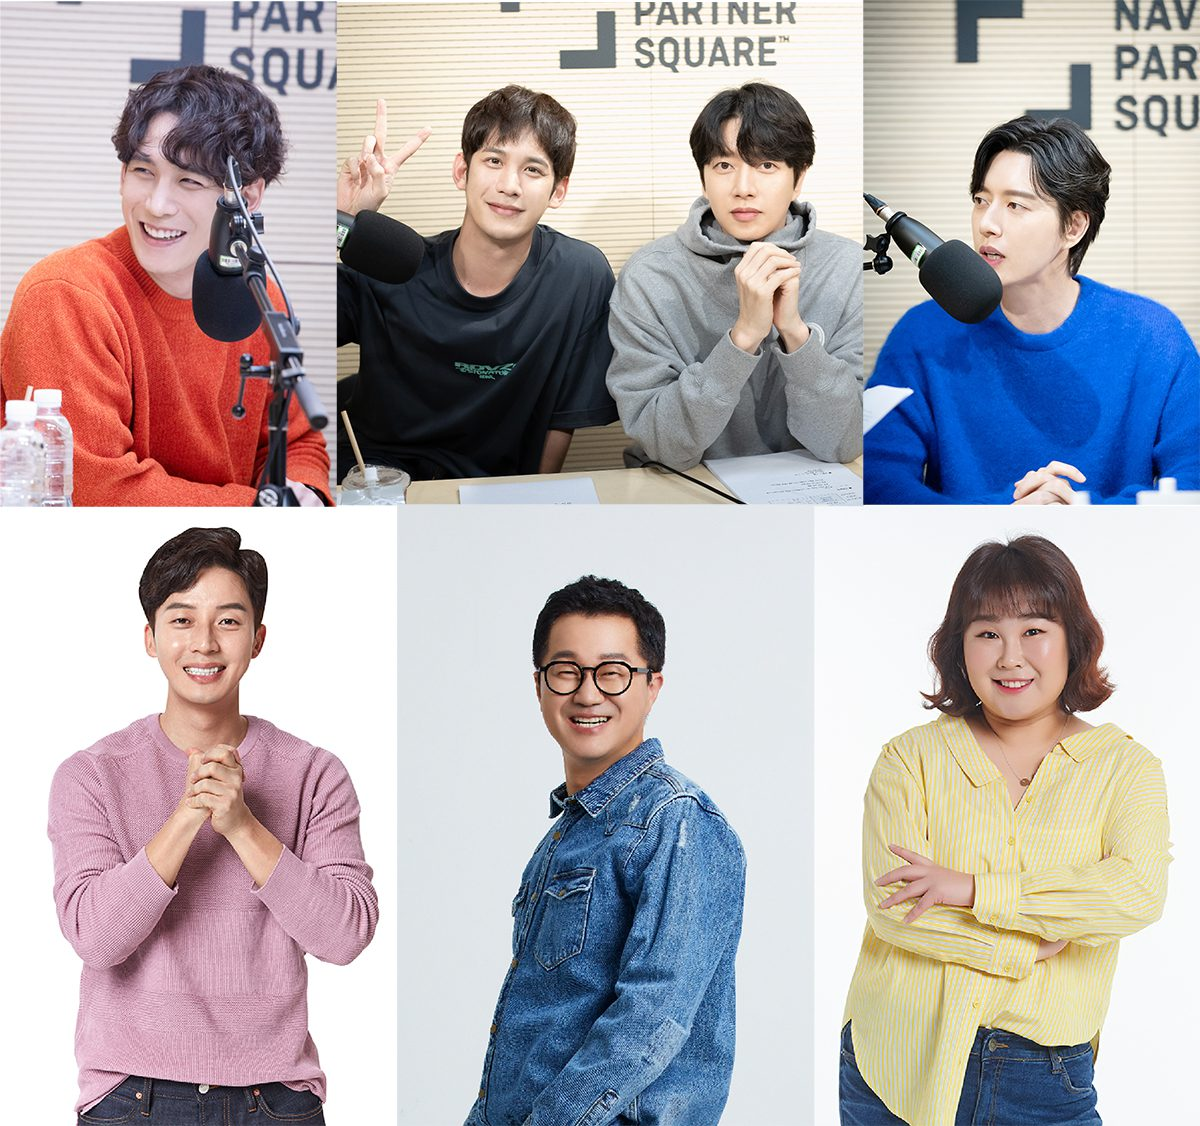 Park Hae-jin x Park Ki-woong 'Two Park Talk Travel 3', Ji Sang-ryul, Heo Gyeong-hwan, and Kim Min-kyung join the show [Official]